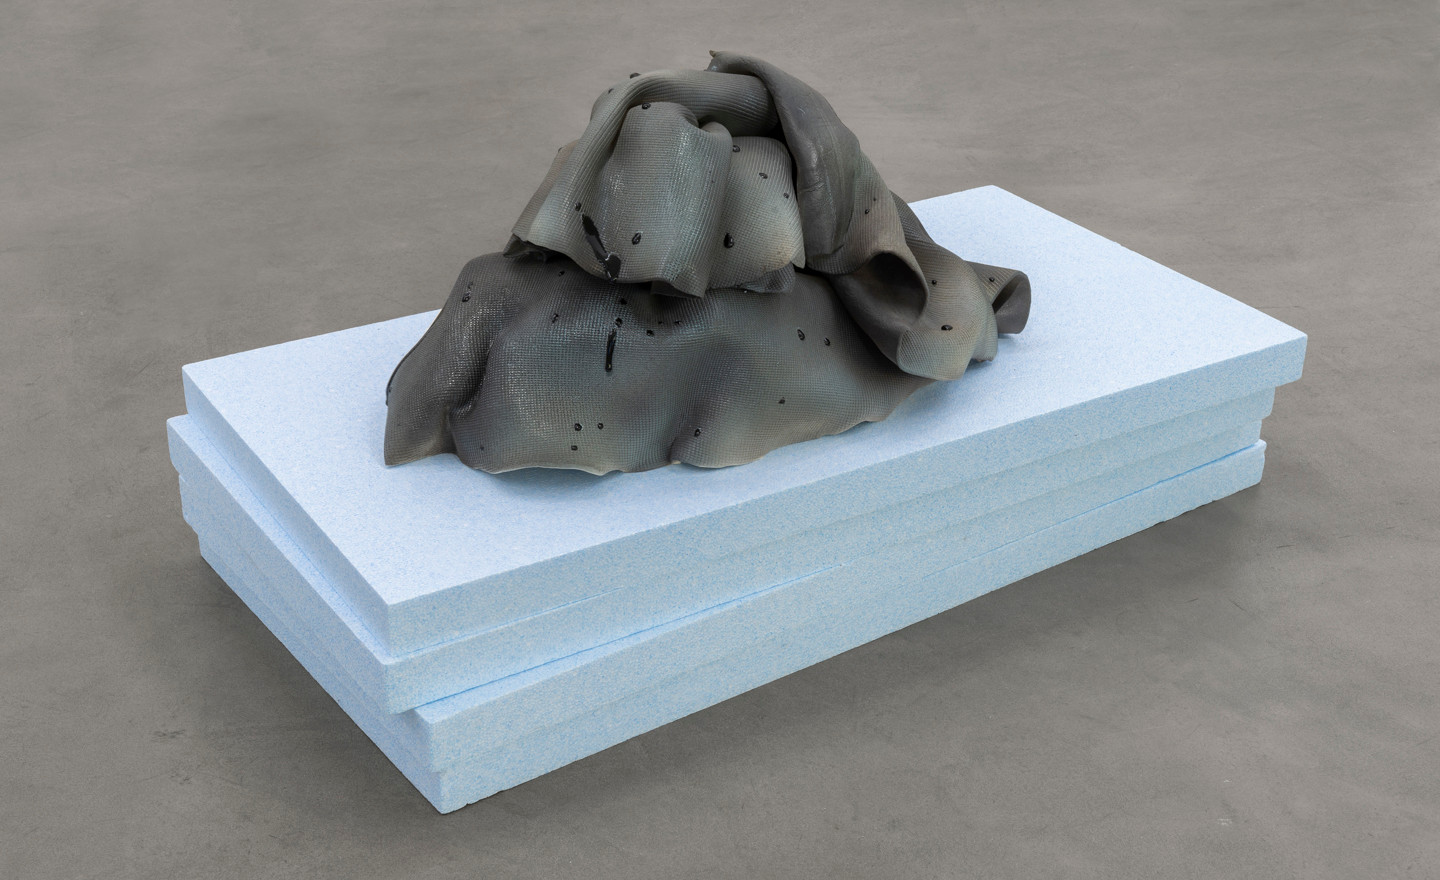 Vera Kox, Resting assured (shedding), 2020, ceramic, insulation panels, cm 75x100x50